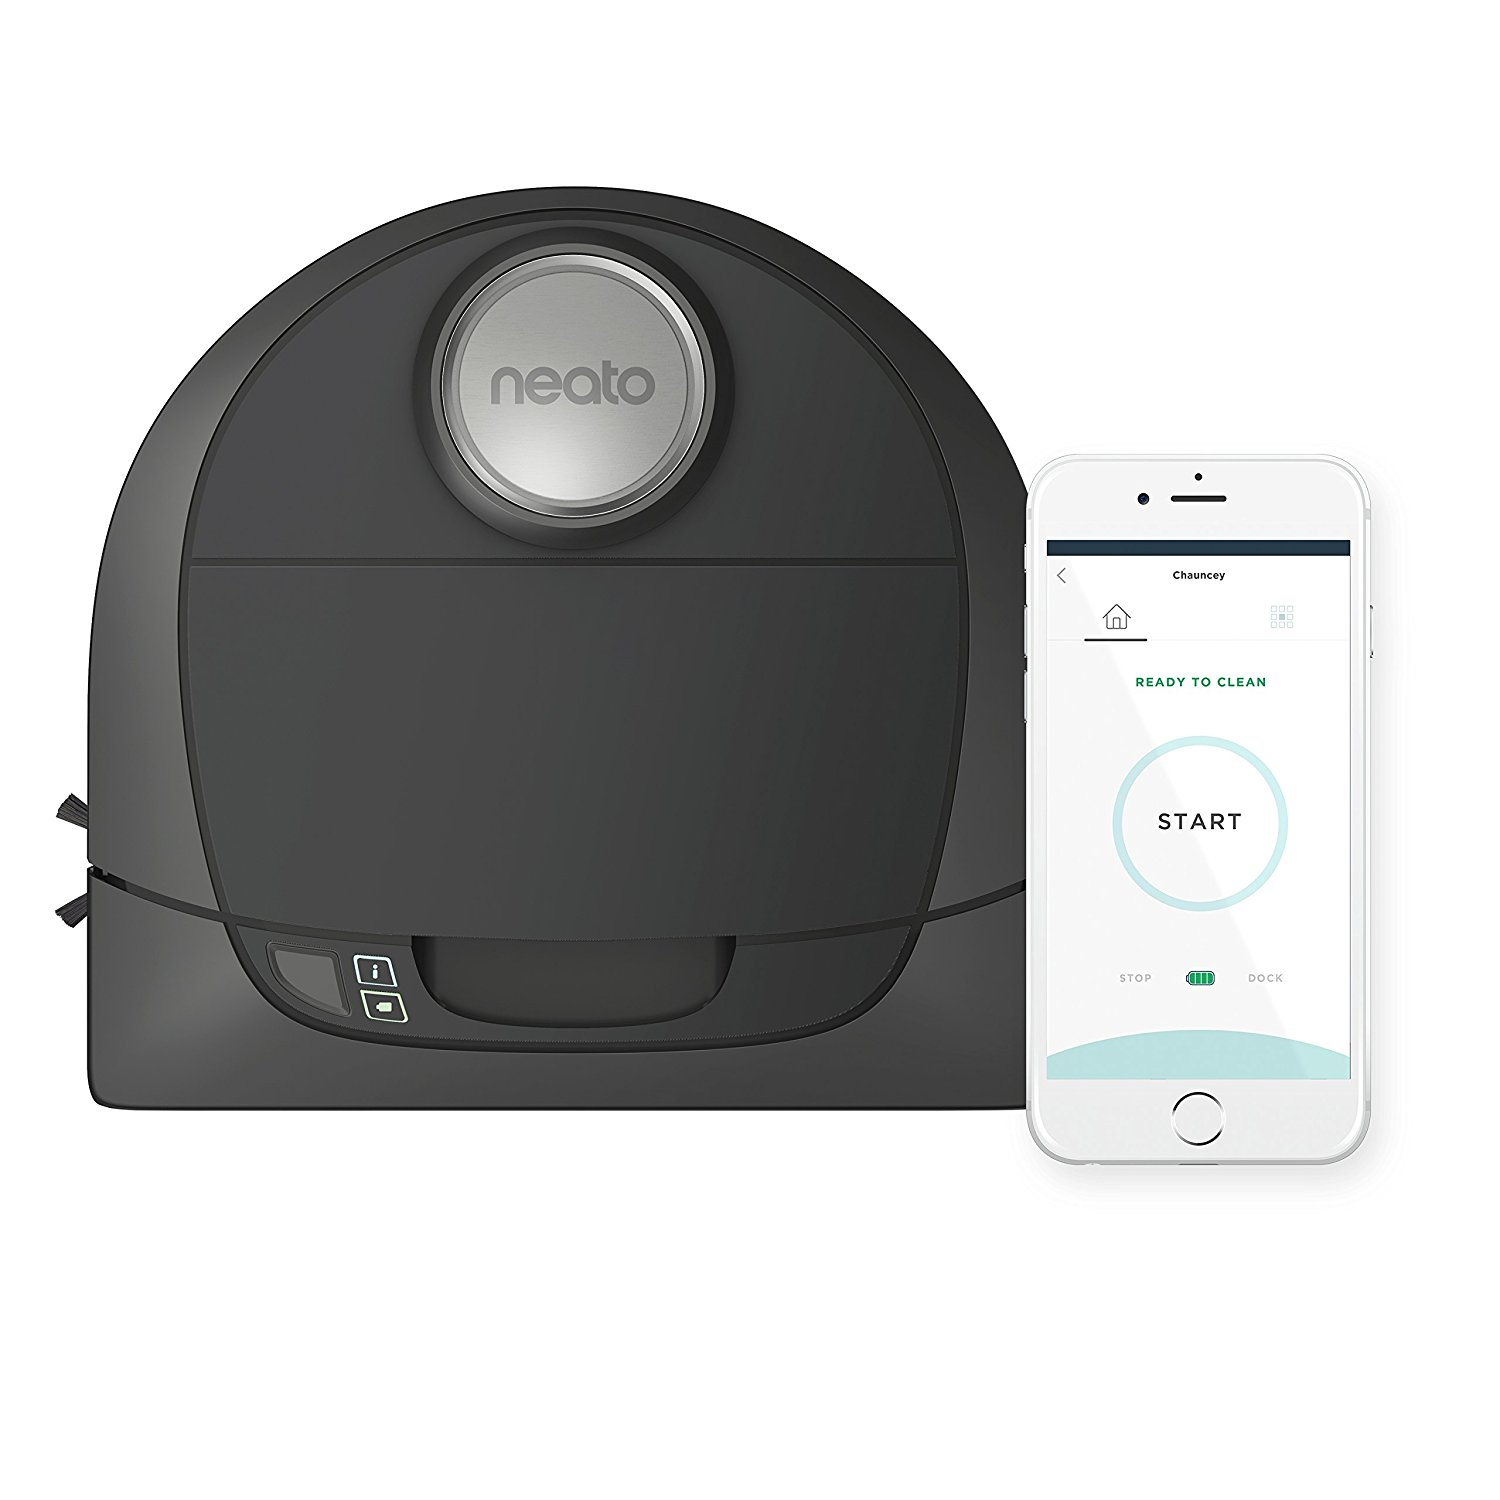 neato botvac d5 robot vacuum review. Black Bedroom Furniture Sets. Home Design Ideas